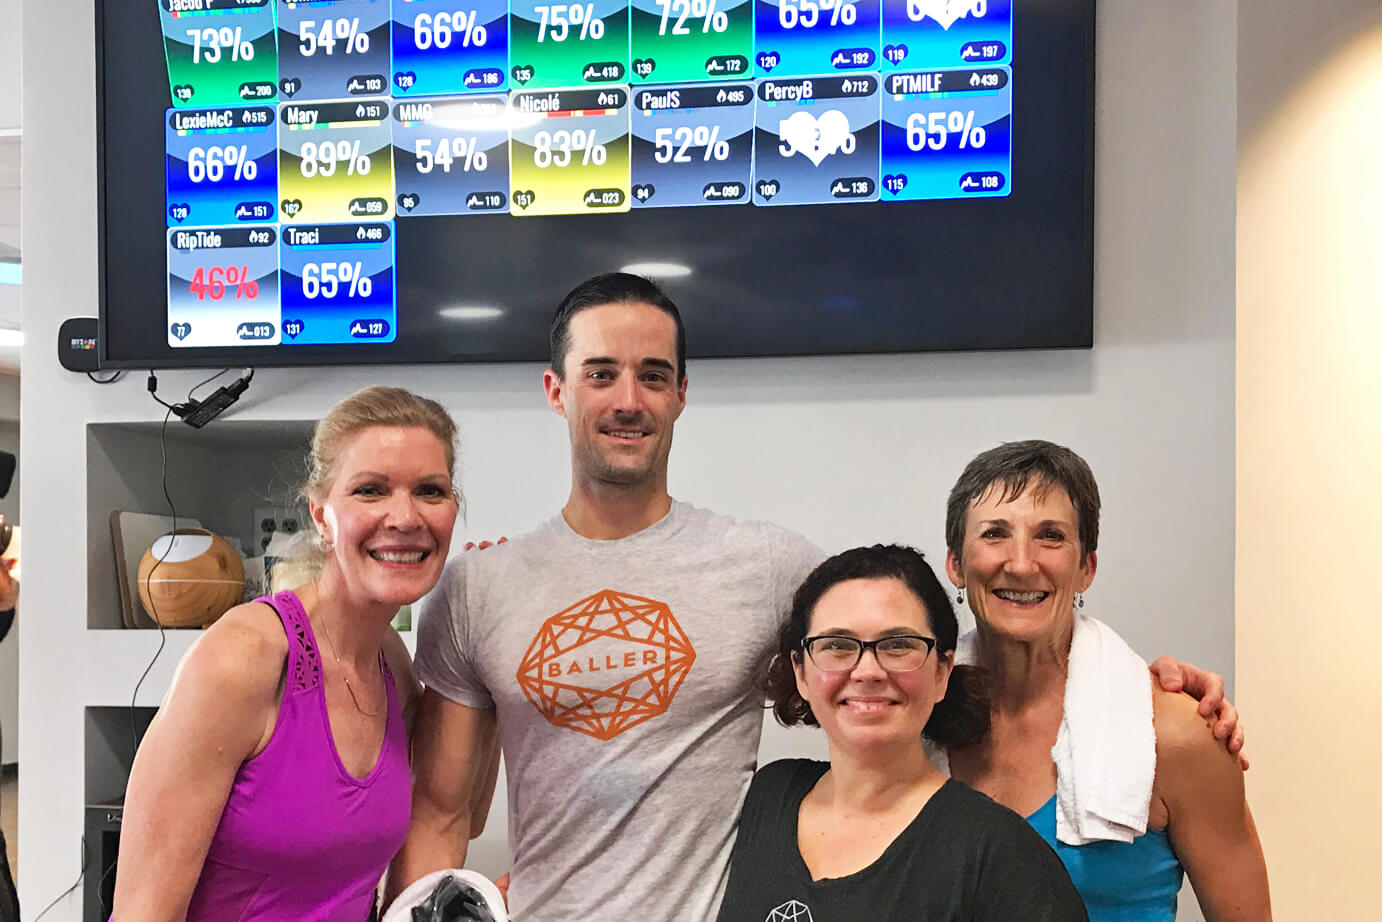 Myzone University with General Managers Marilyn and Michele, and Trainers Tara and Jeremy